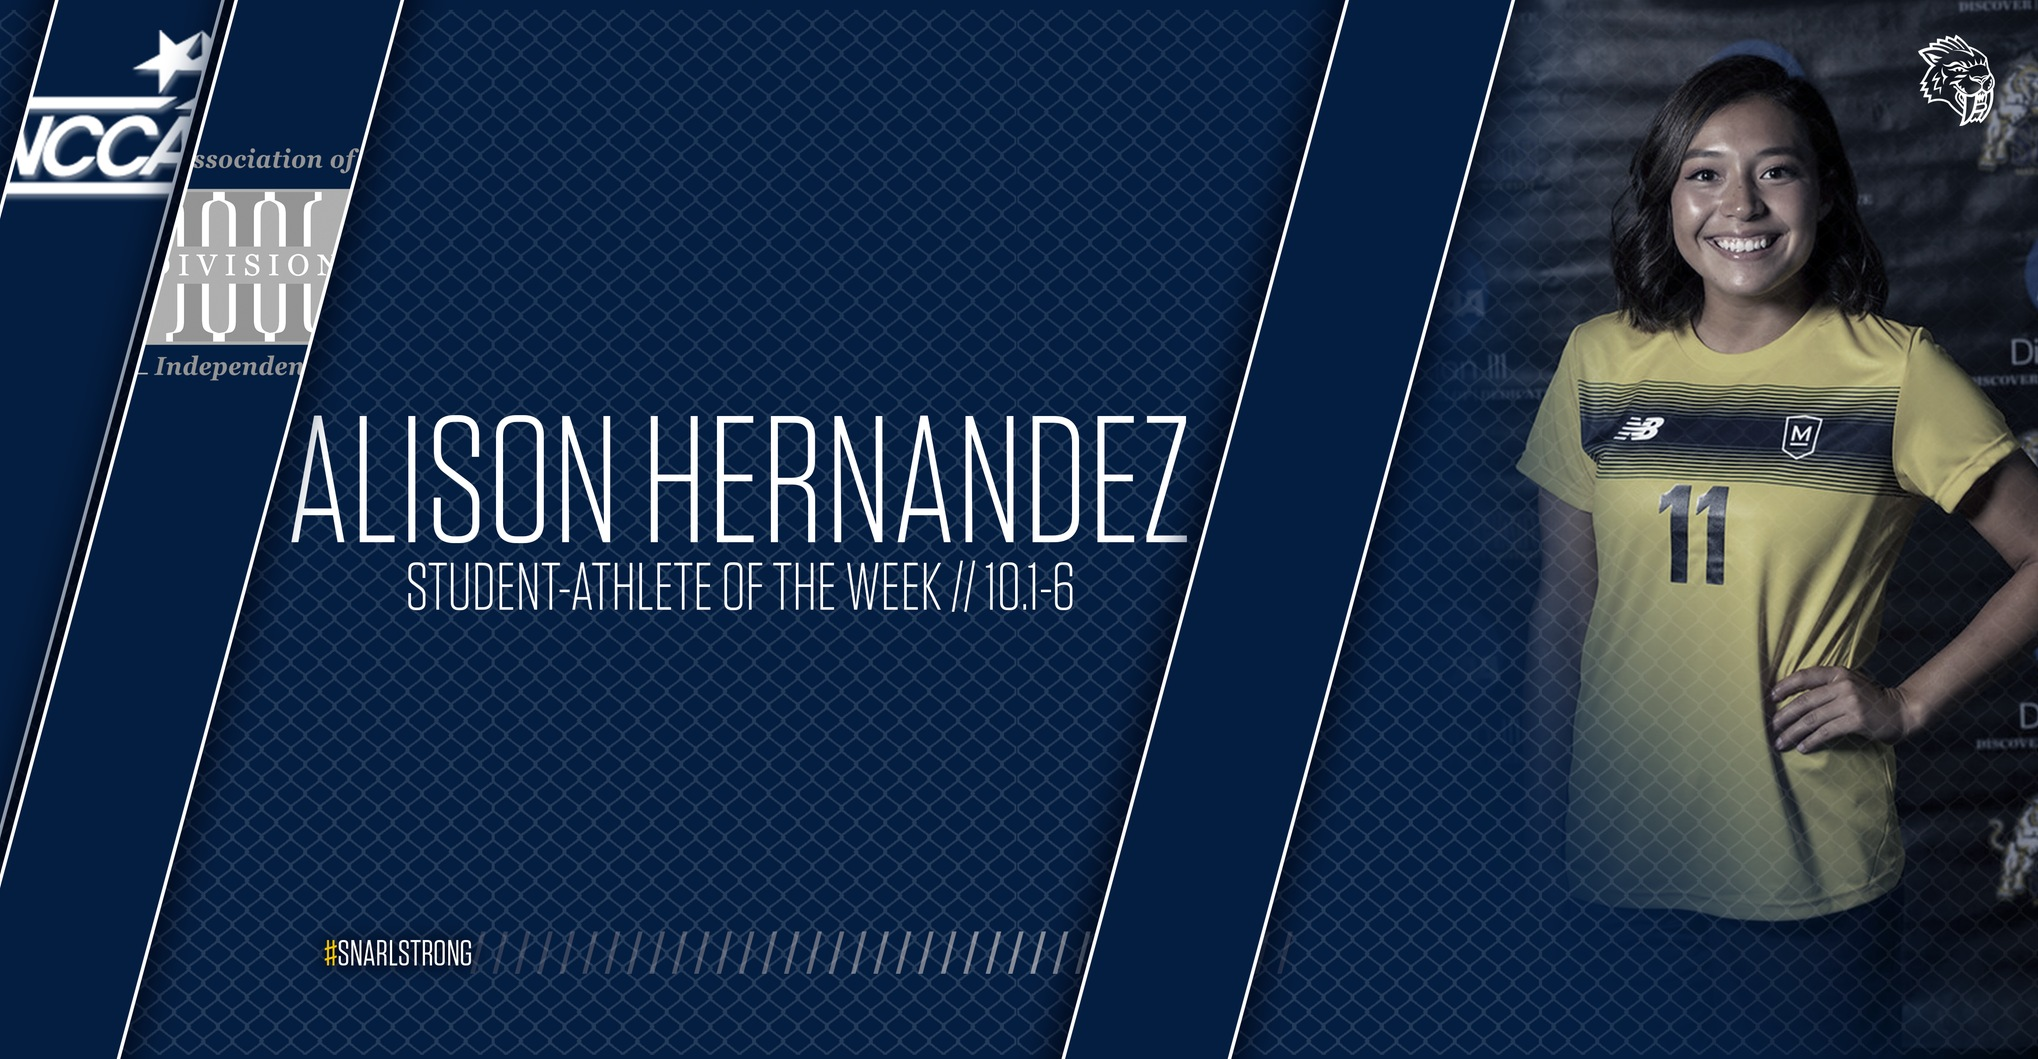 Honors for Hernandez